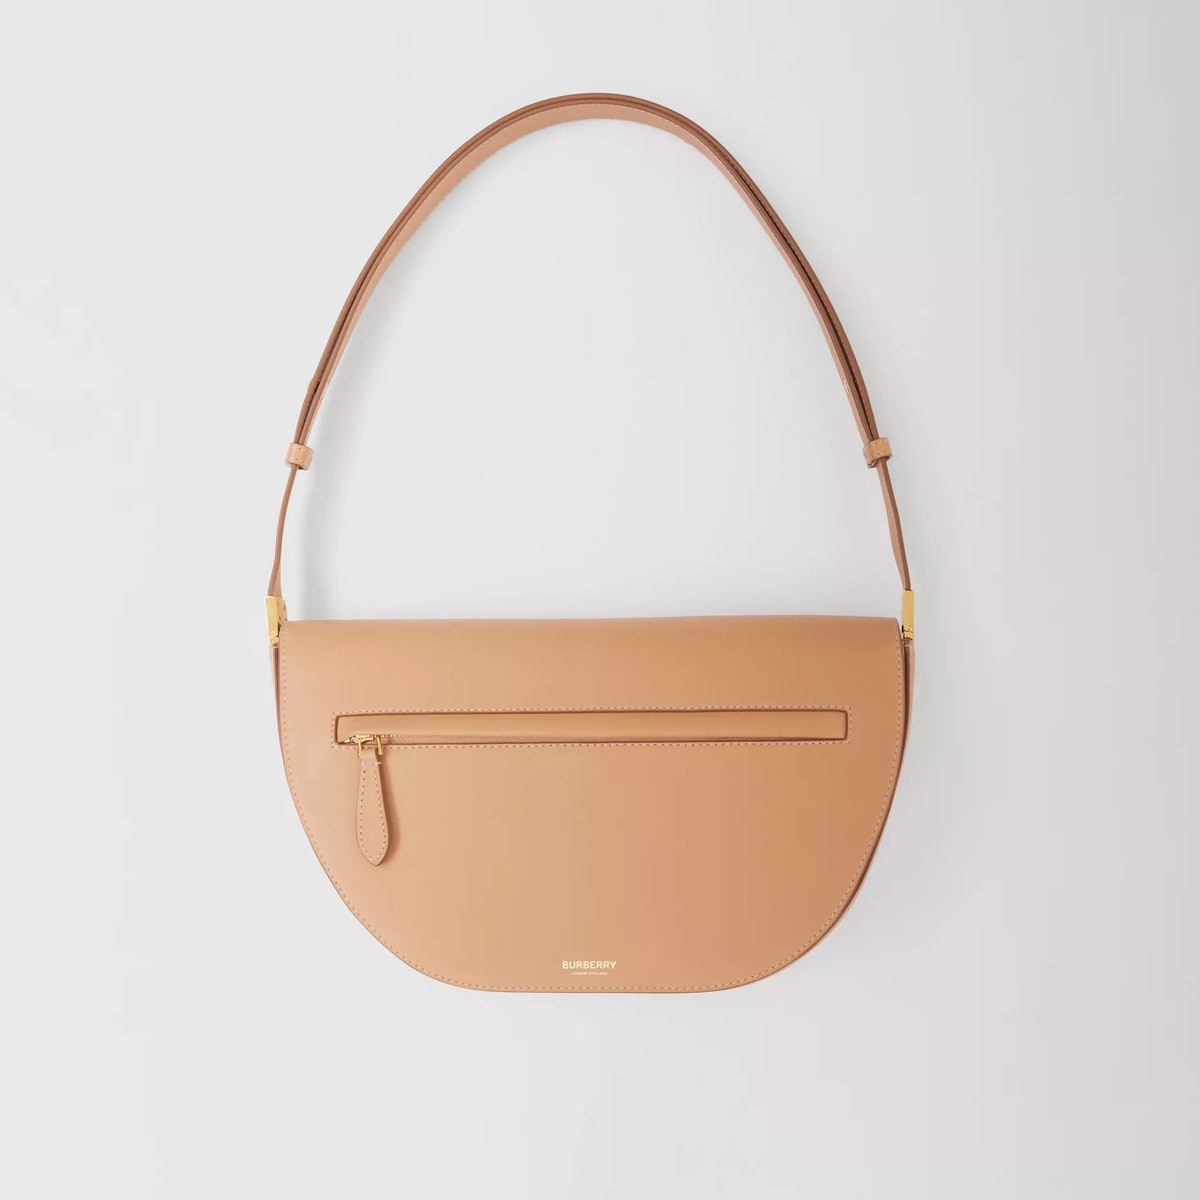 Medium Leather Olympia Bag in Warm Sand from Burberry.